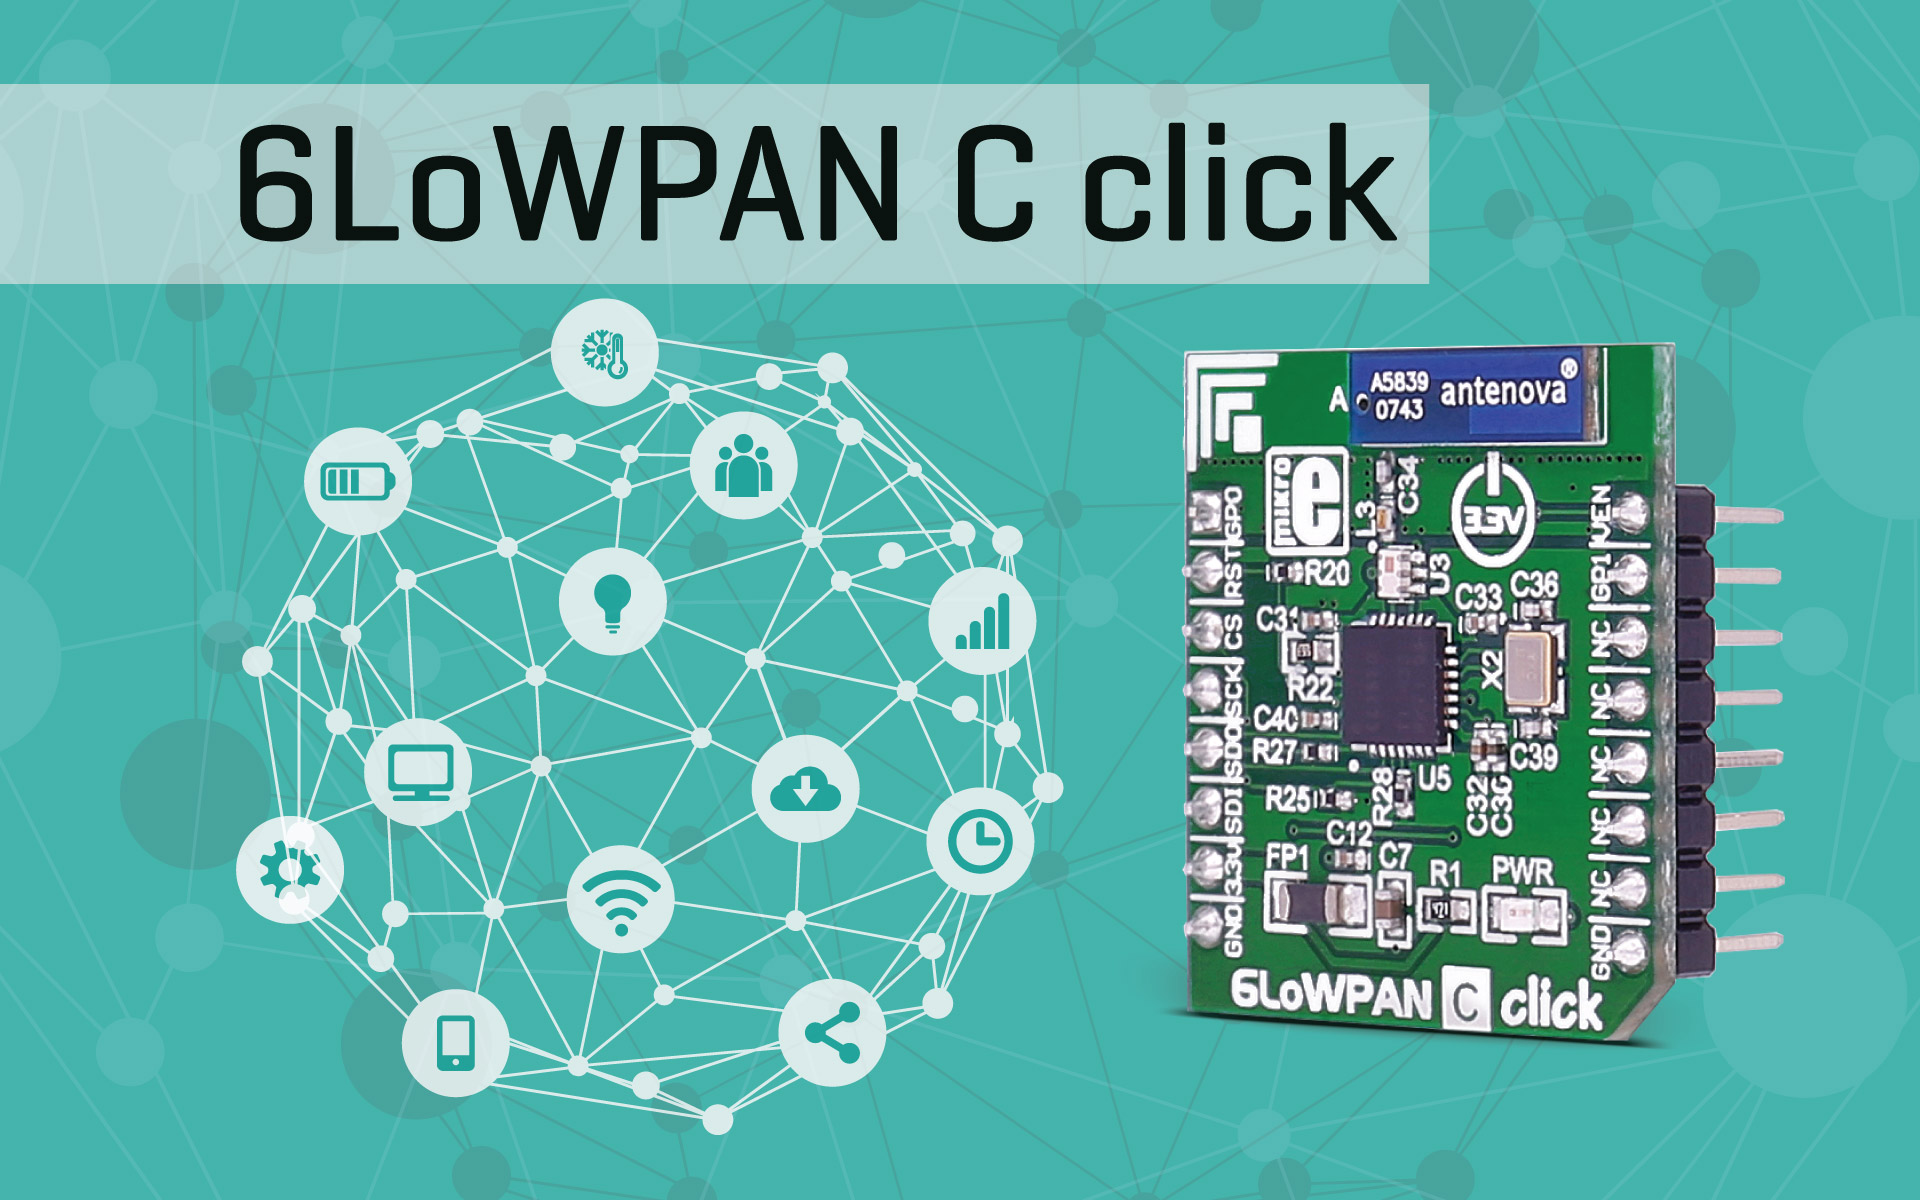 6LoWPAN C click - 2.4GHz transceiver